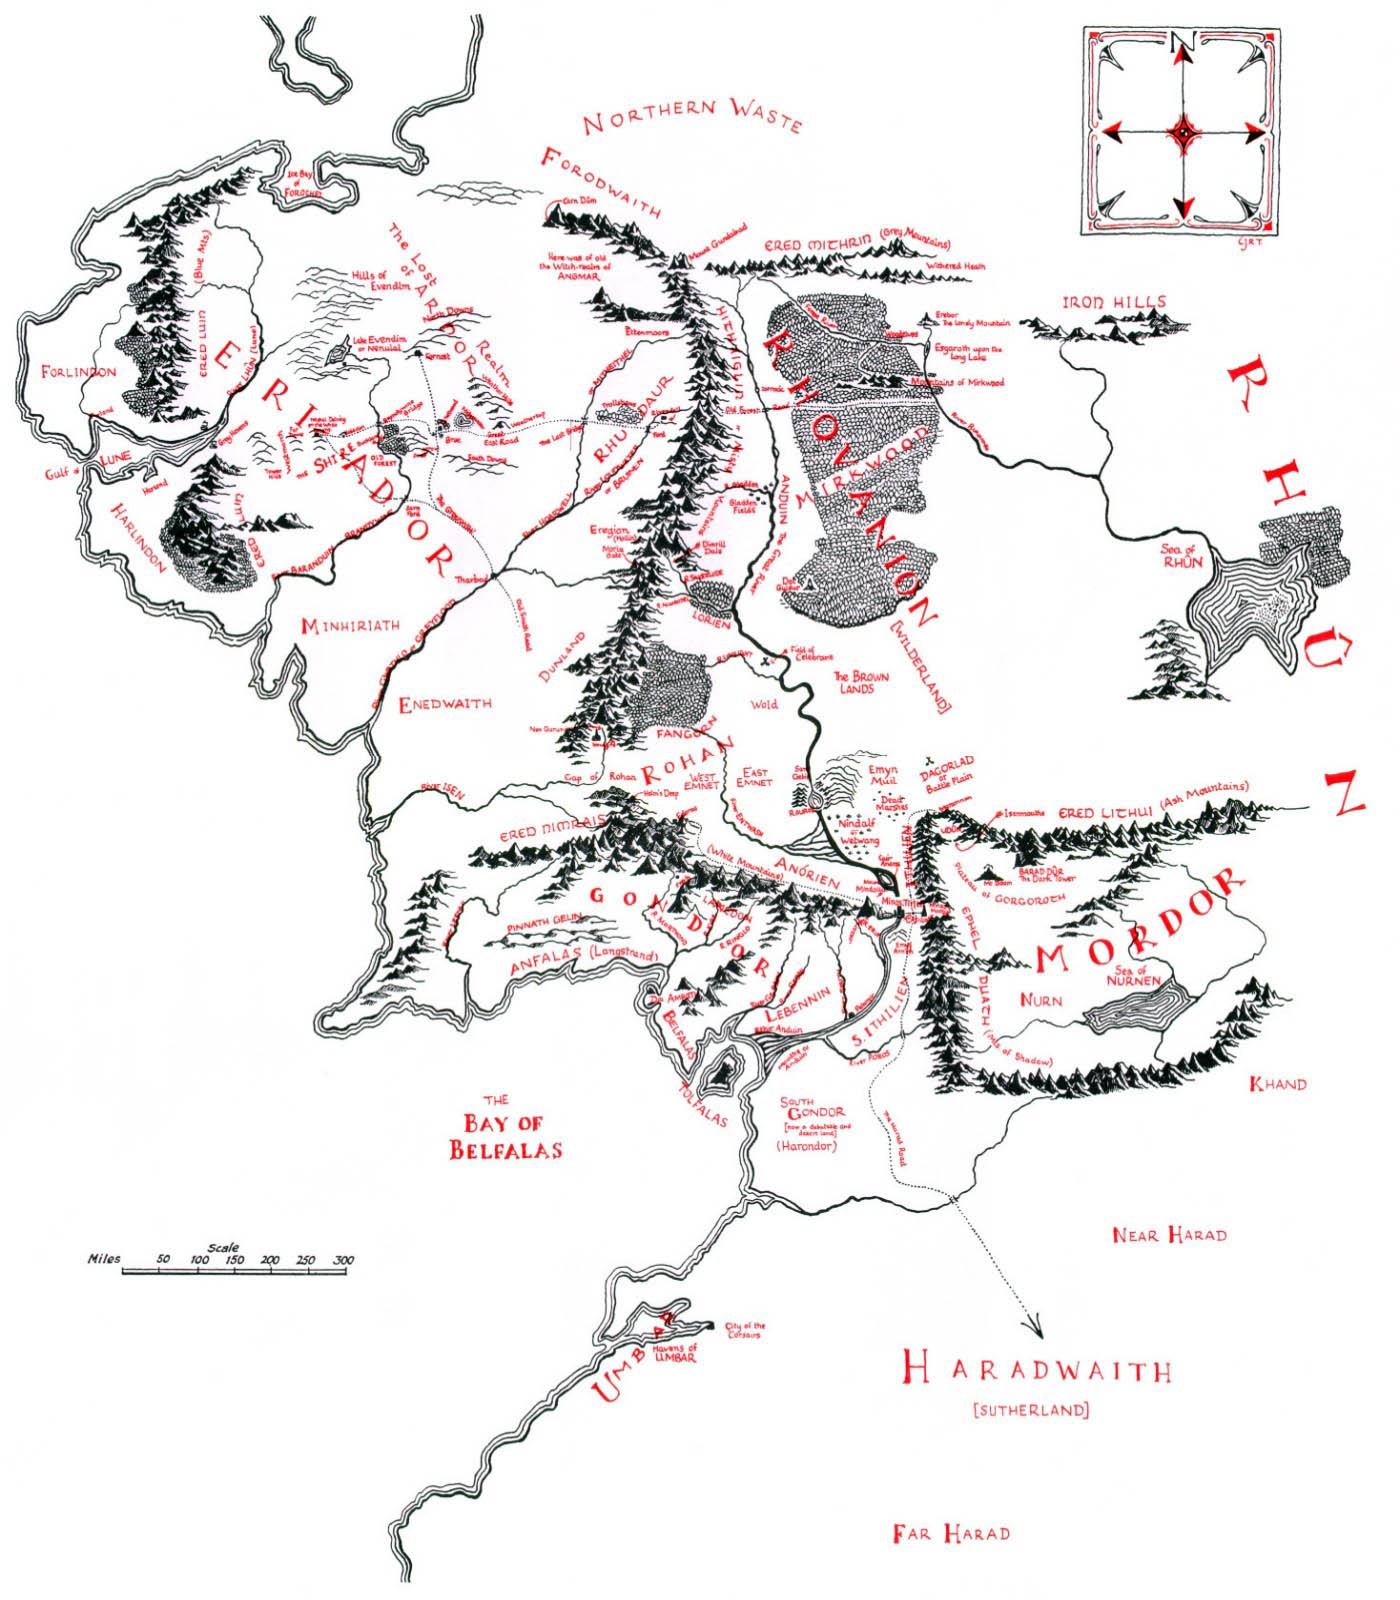 Strange horizons written in maps by ccile cristofari the map of j r r tolkiens middle earth biocorpaavc Choice Image